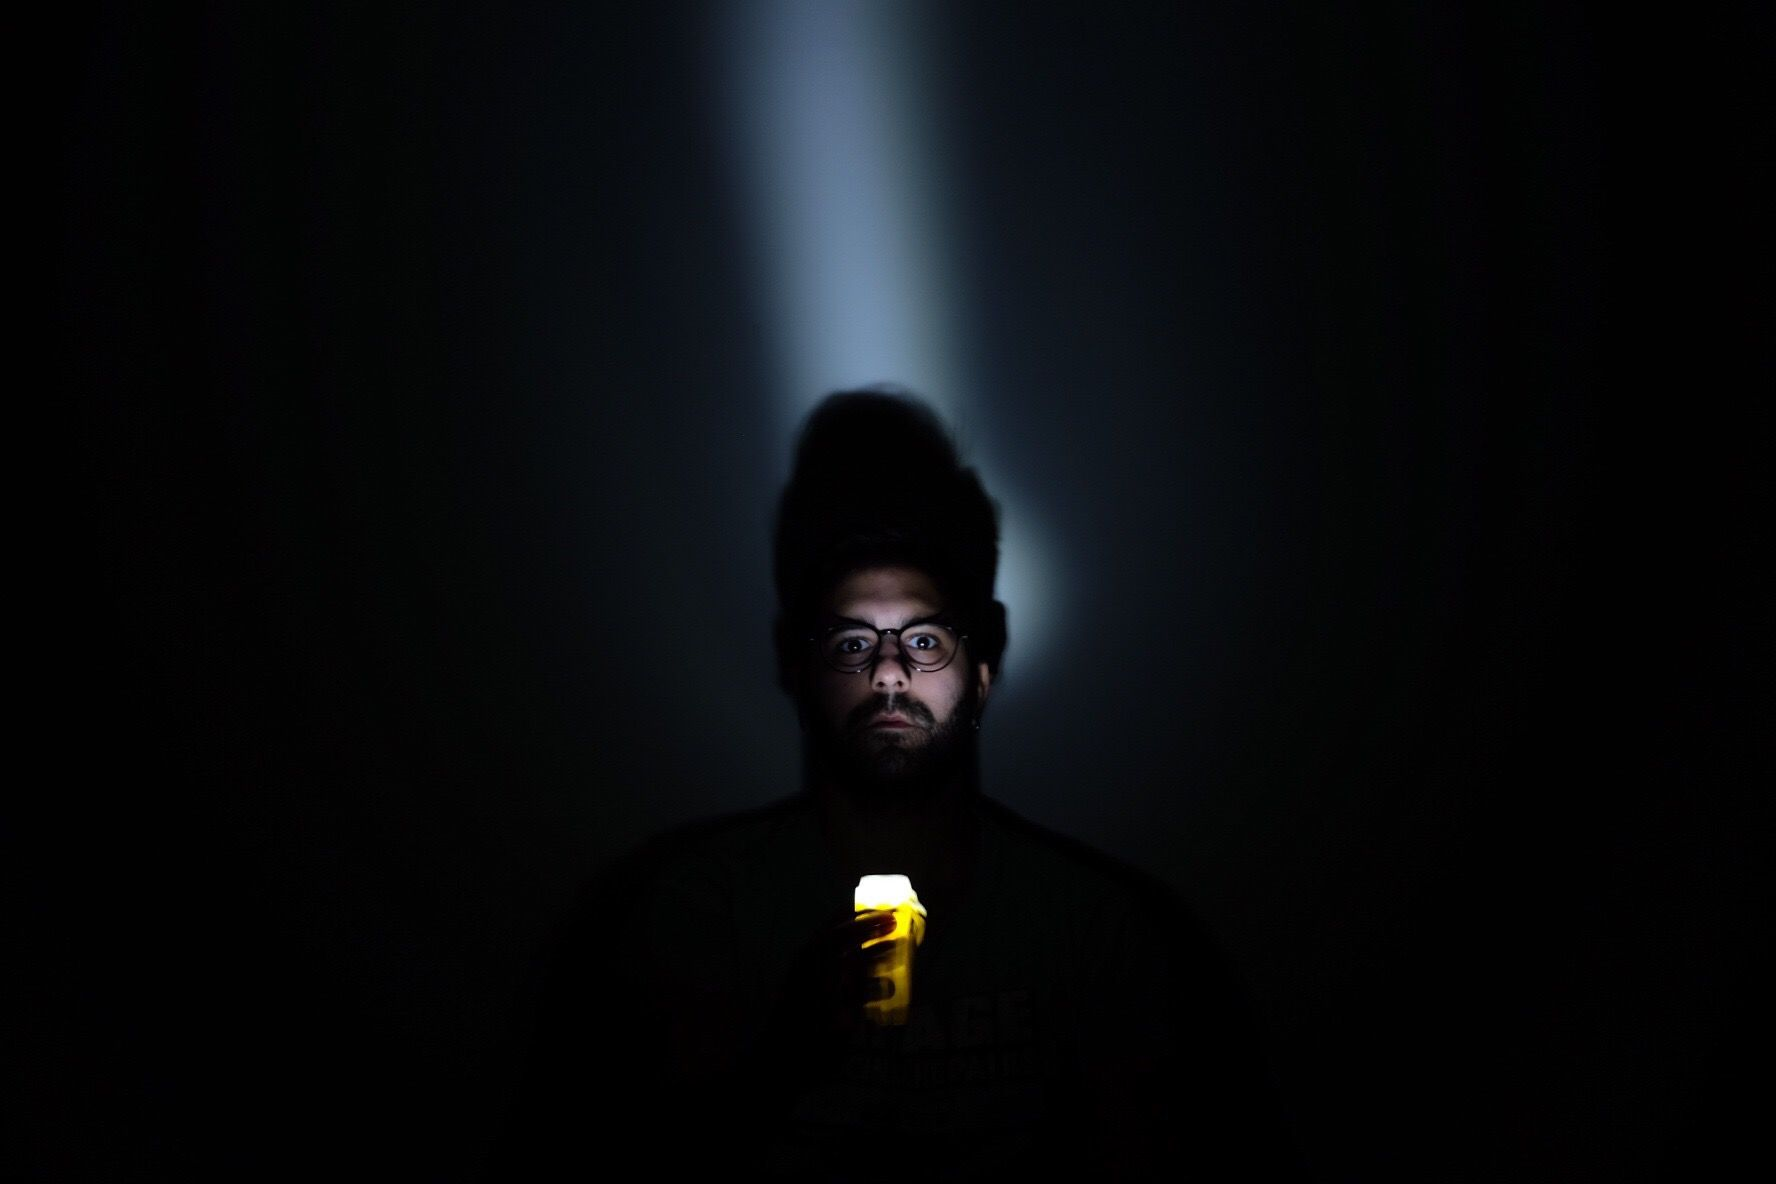 Man holding a flashlight to his face during a power outage.